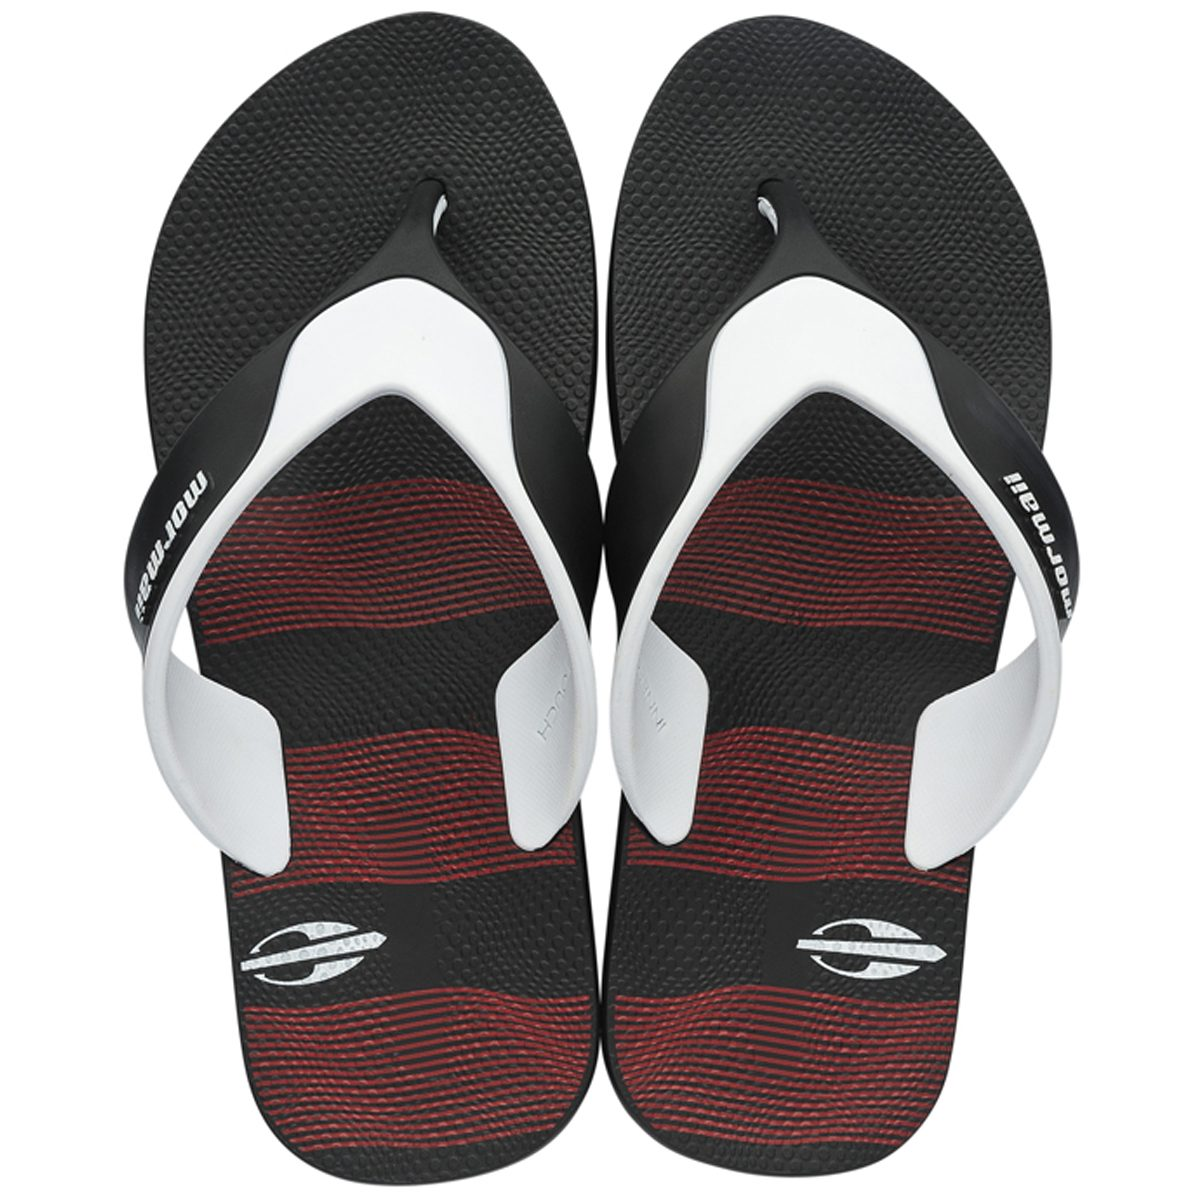 chinelo mormaii neocycle 2.0 preto com bordô. Carregando zoom. 82f21b6b5dd80